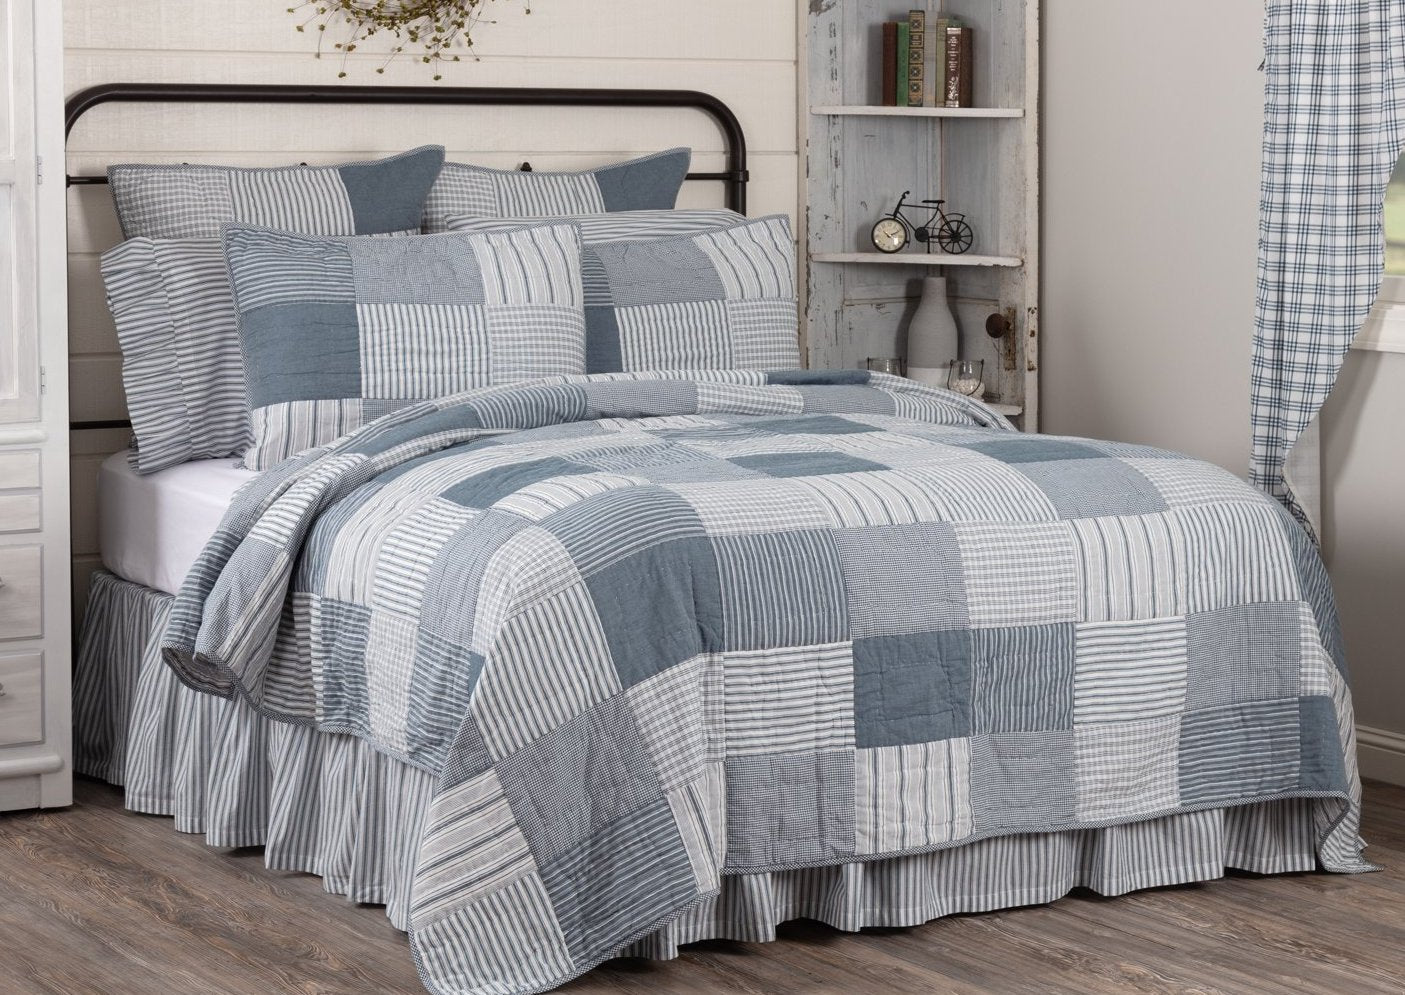 Sawyer Mill Blue California King Quilt 130wx115l Allysons Place